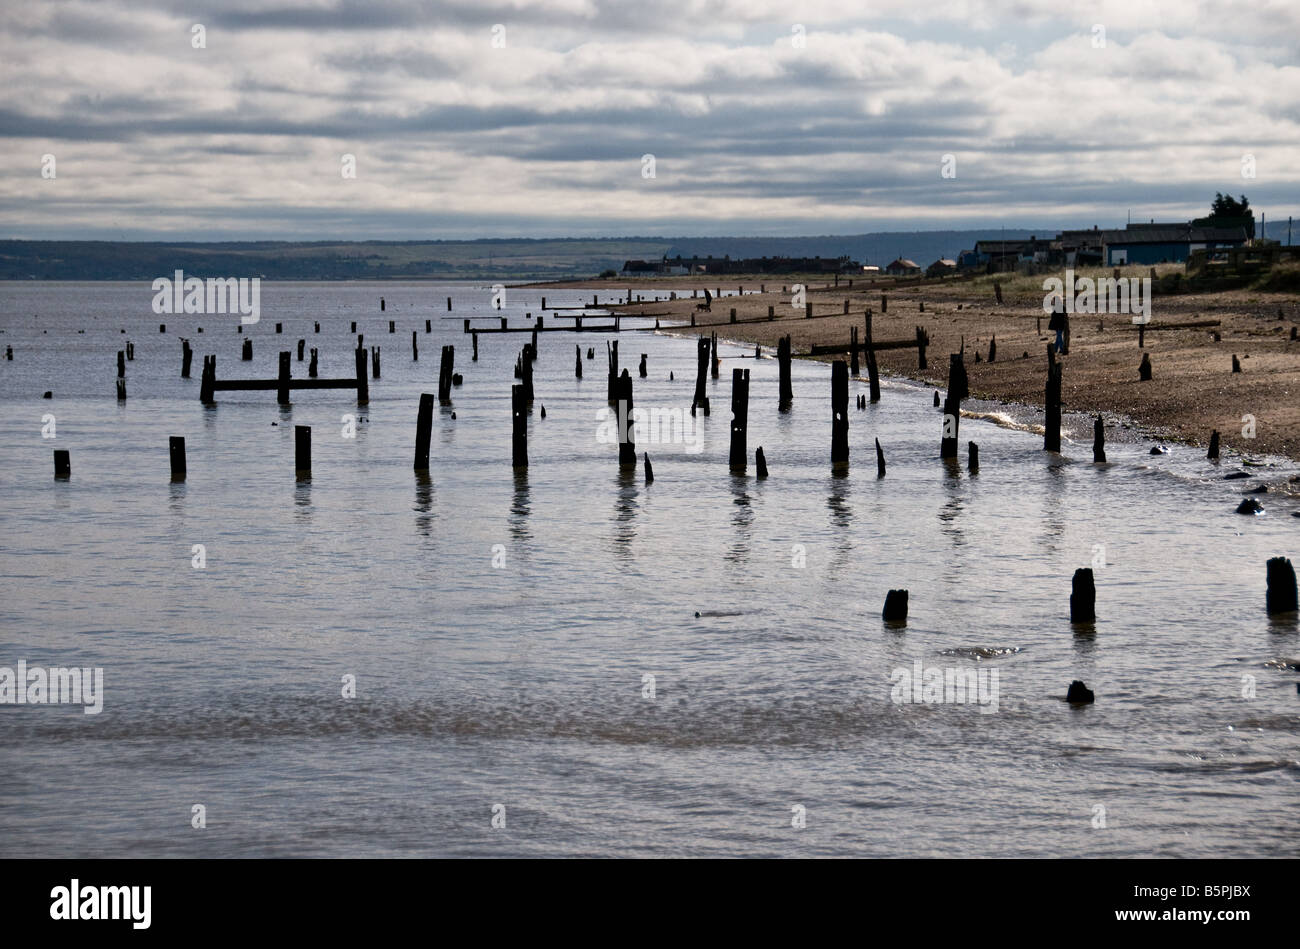 The beach at Leysdown on Sea on the Isle of Sheppy in Kent. - Stock Image